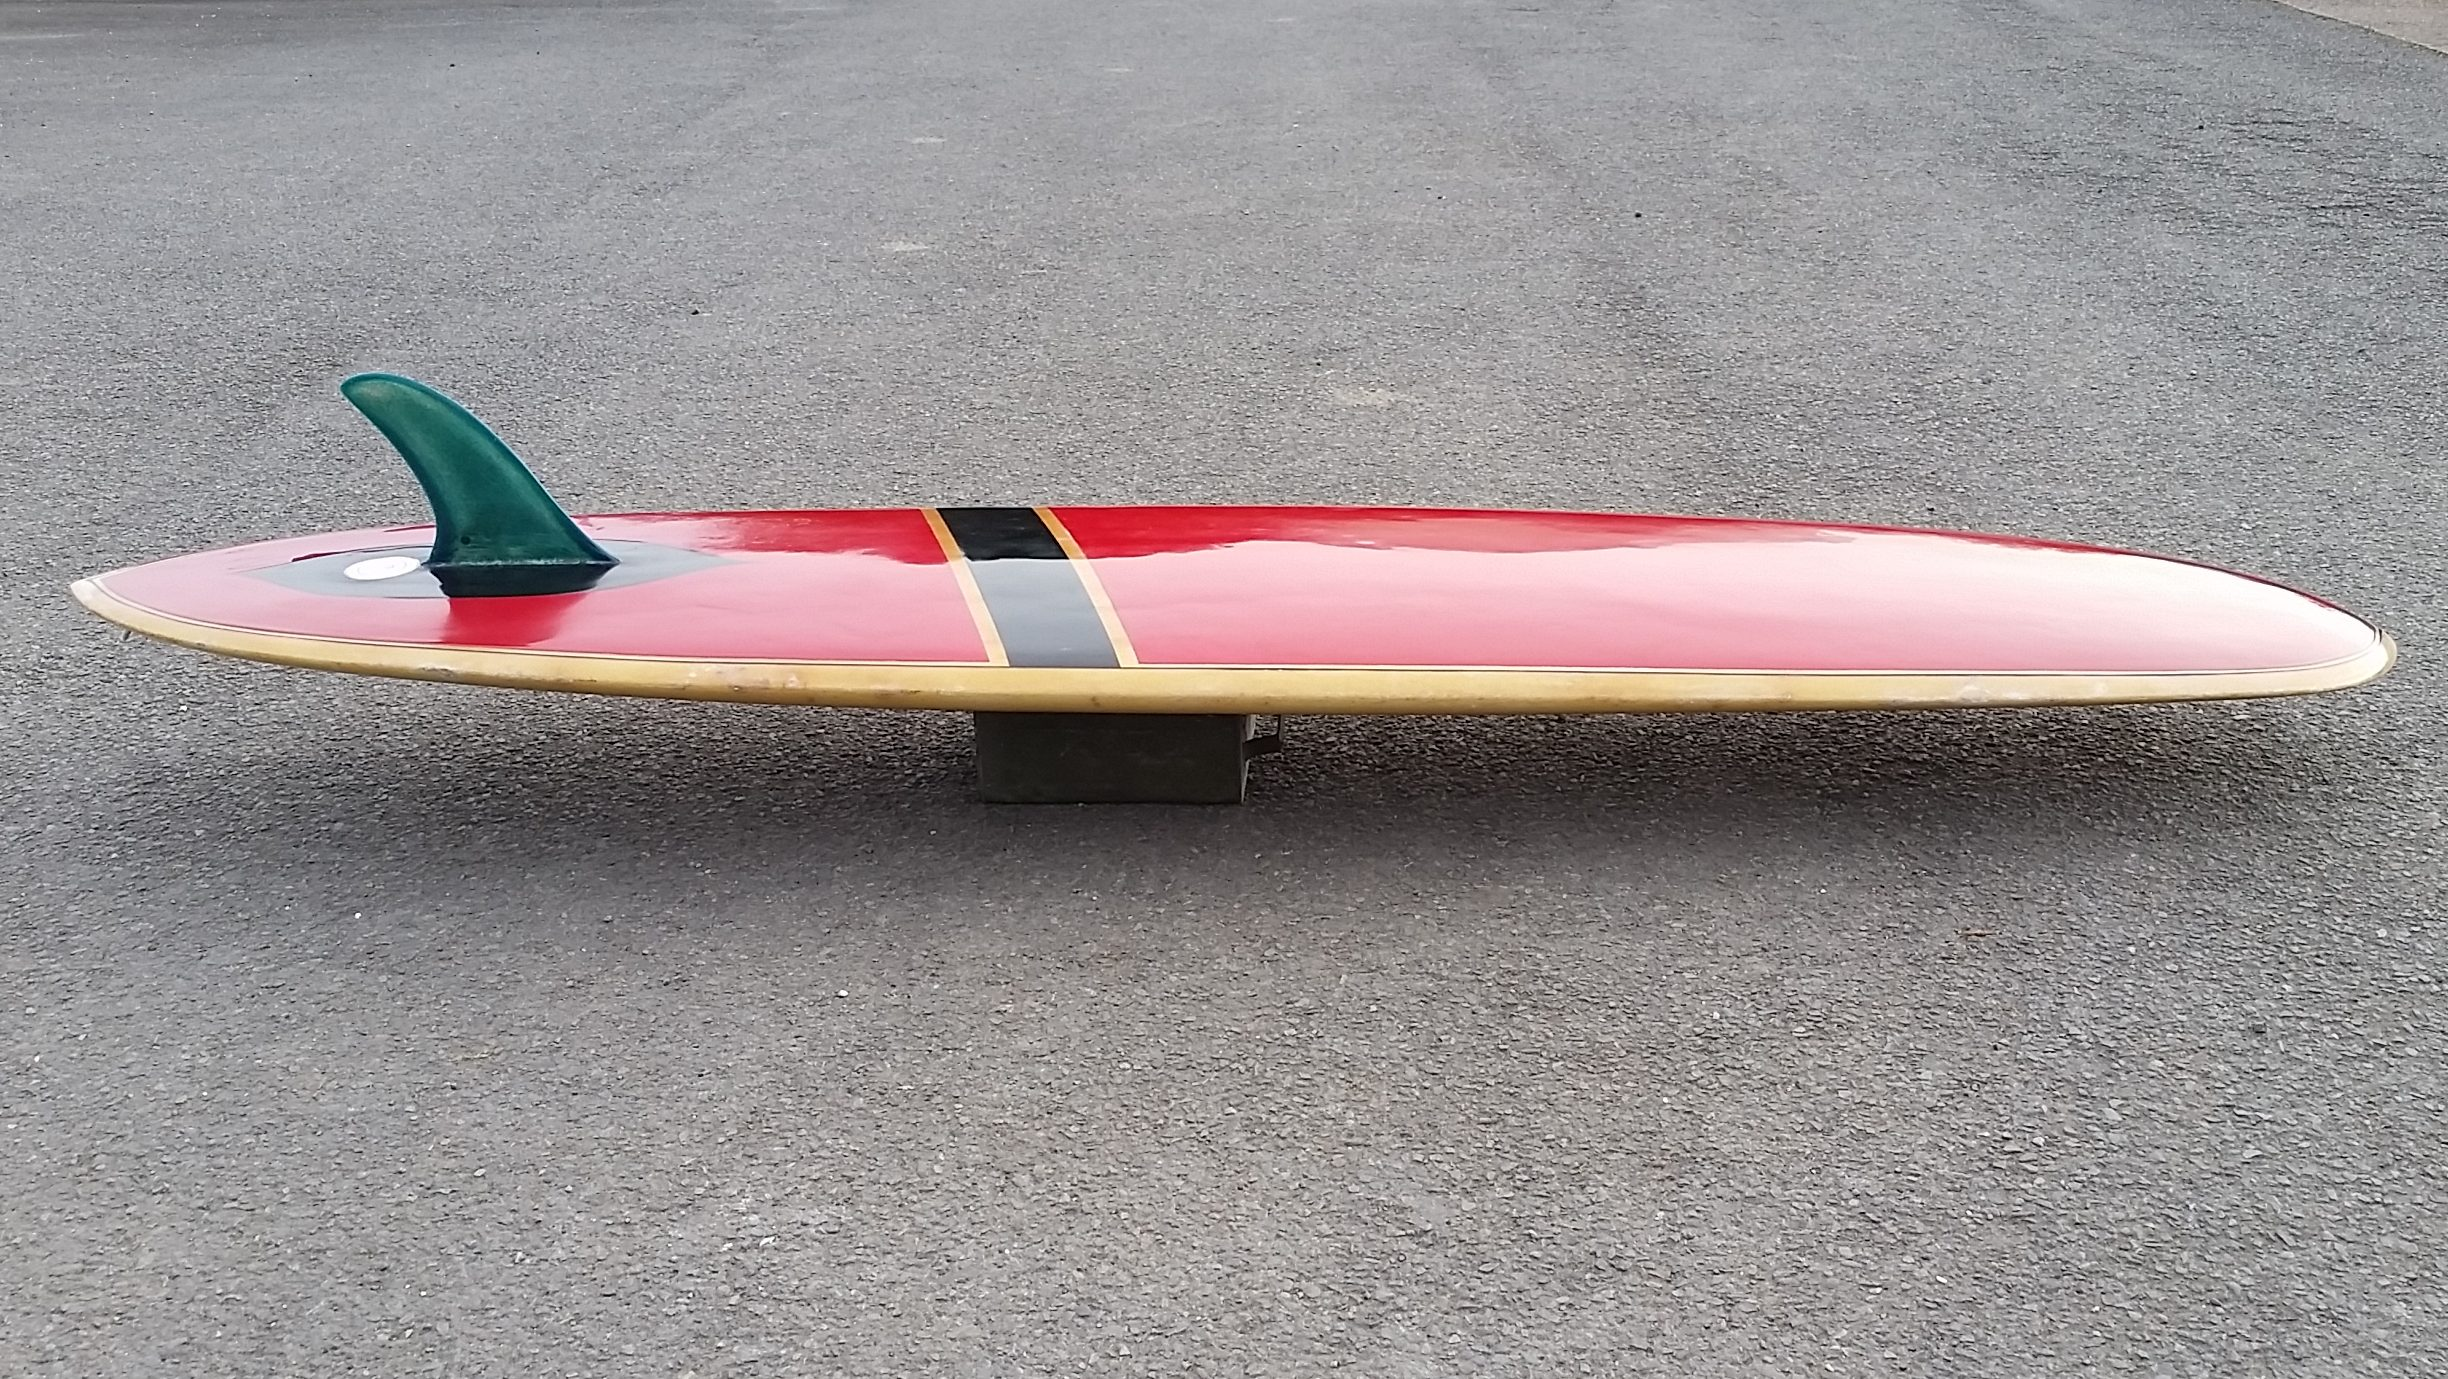 Vintage 1960 39 s bilbo transitional longboard surfboard for sale for Fish surfboard for sale